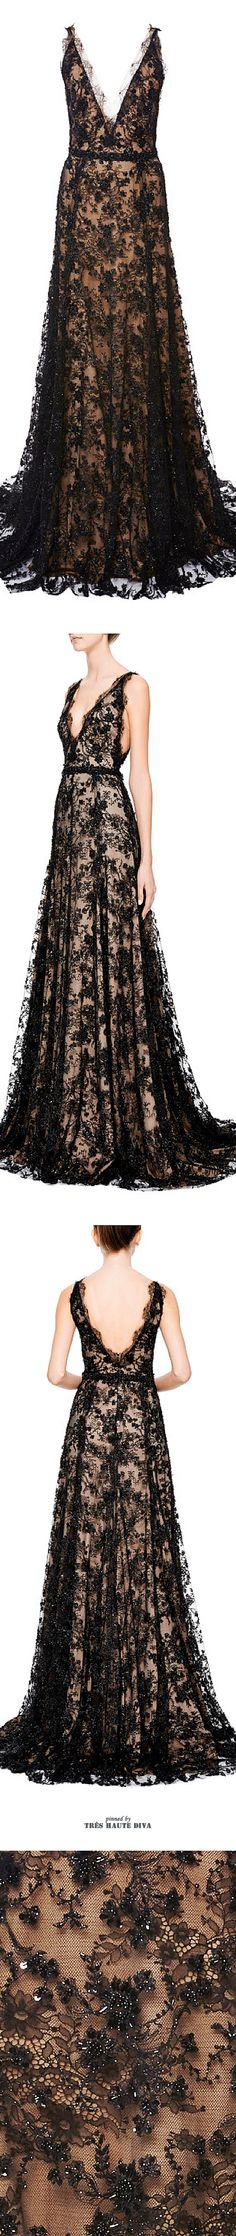 A little too low for me but so pretty.Marchesa Embroidered Chantilly Lace Gown SS 2015 ♔THD♔